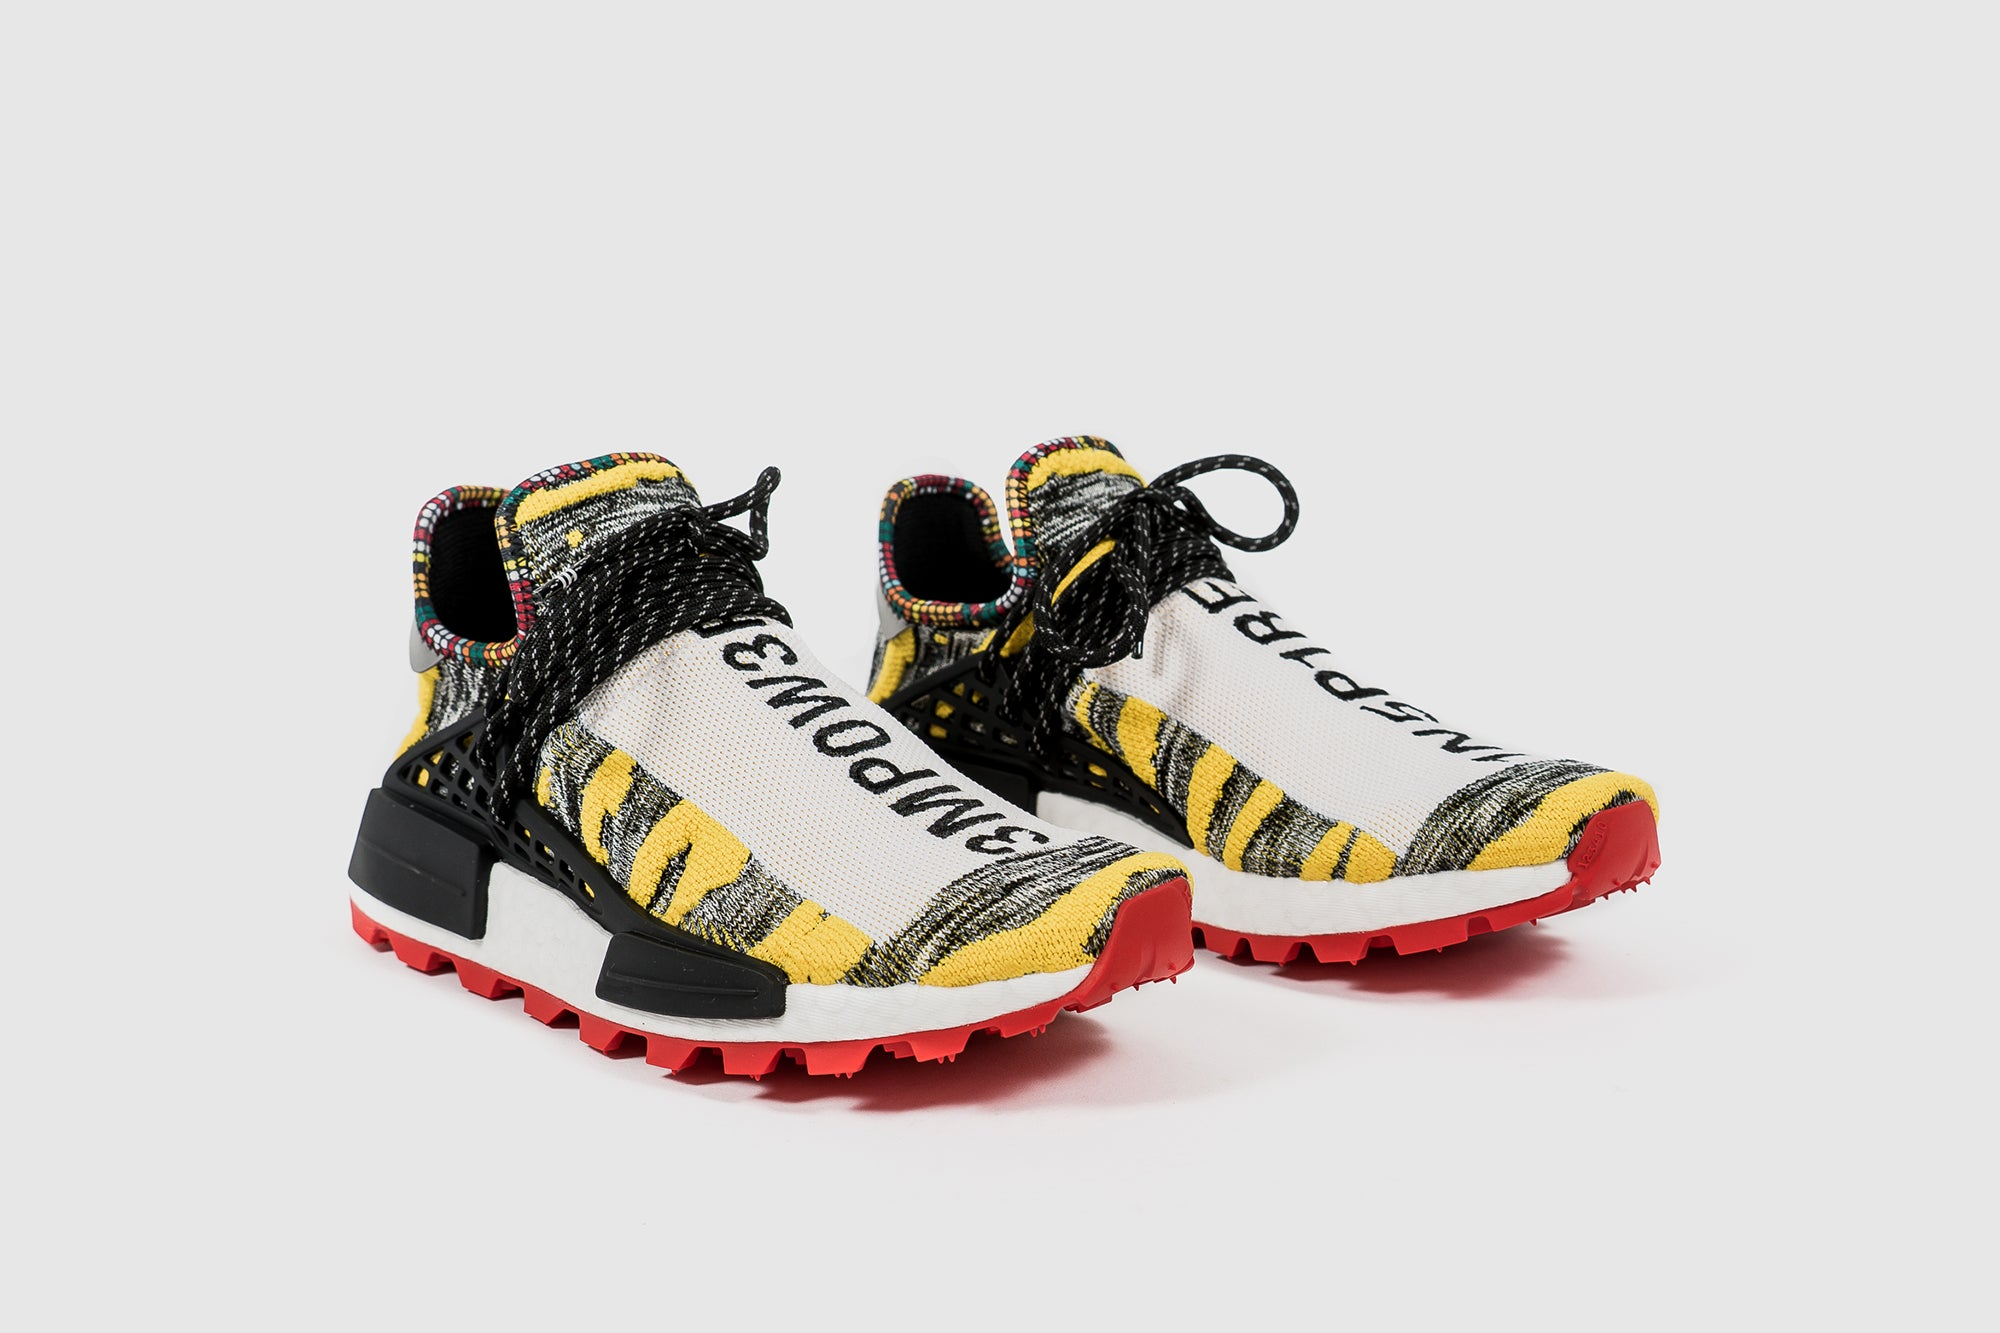 low priced b1fdc 0e6aa PHARRELL WILLIAMS = ADIDAS ORIGINALS SOLAR HU NMD – PACKER SHOES